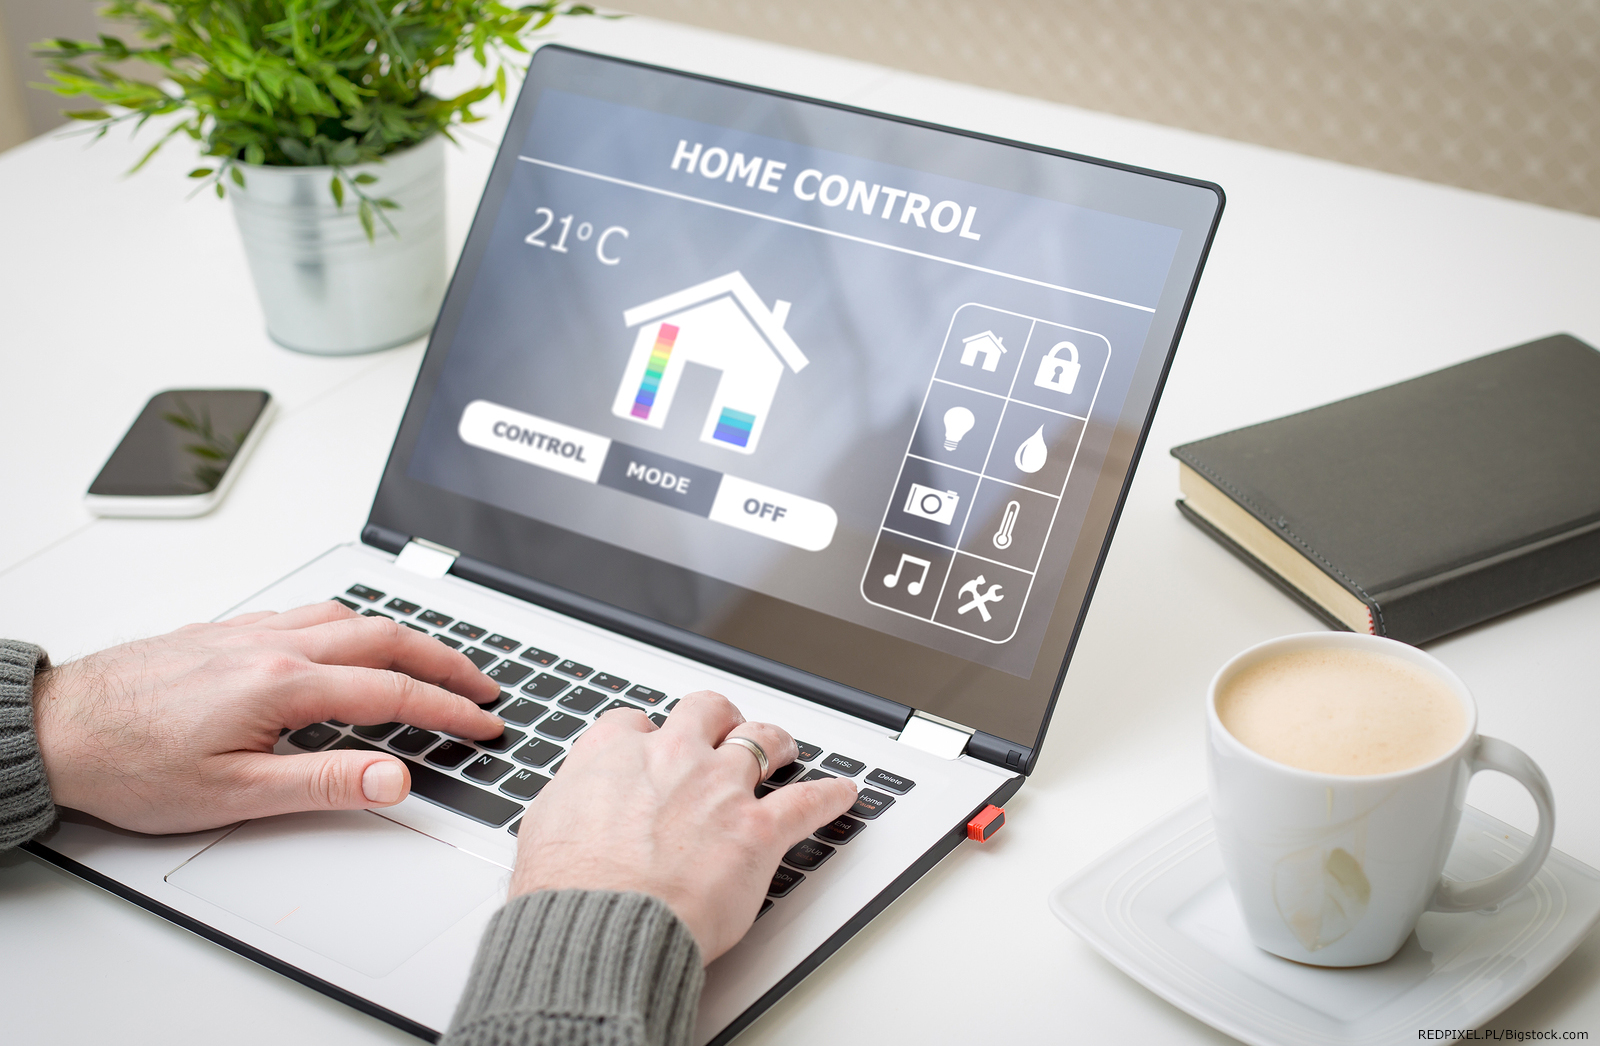 The Role of Residential Security Systems in the Smart Home Ecosystem